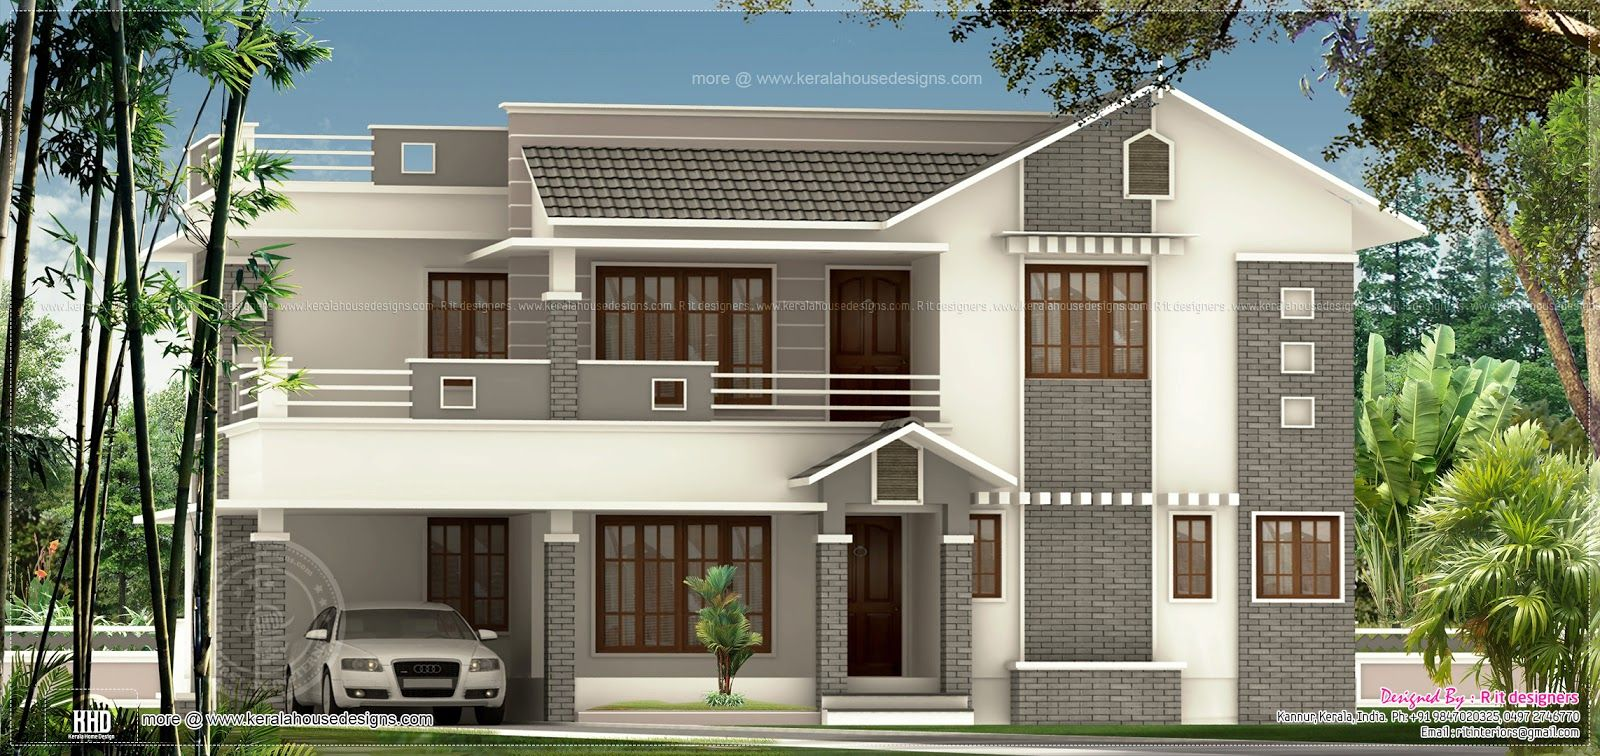 Colour Combination For House Front Elevation : Exterior colour combinations light shades